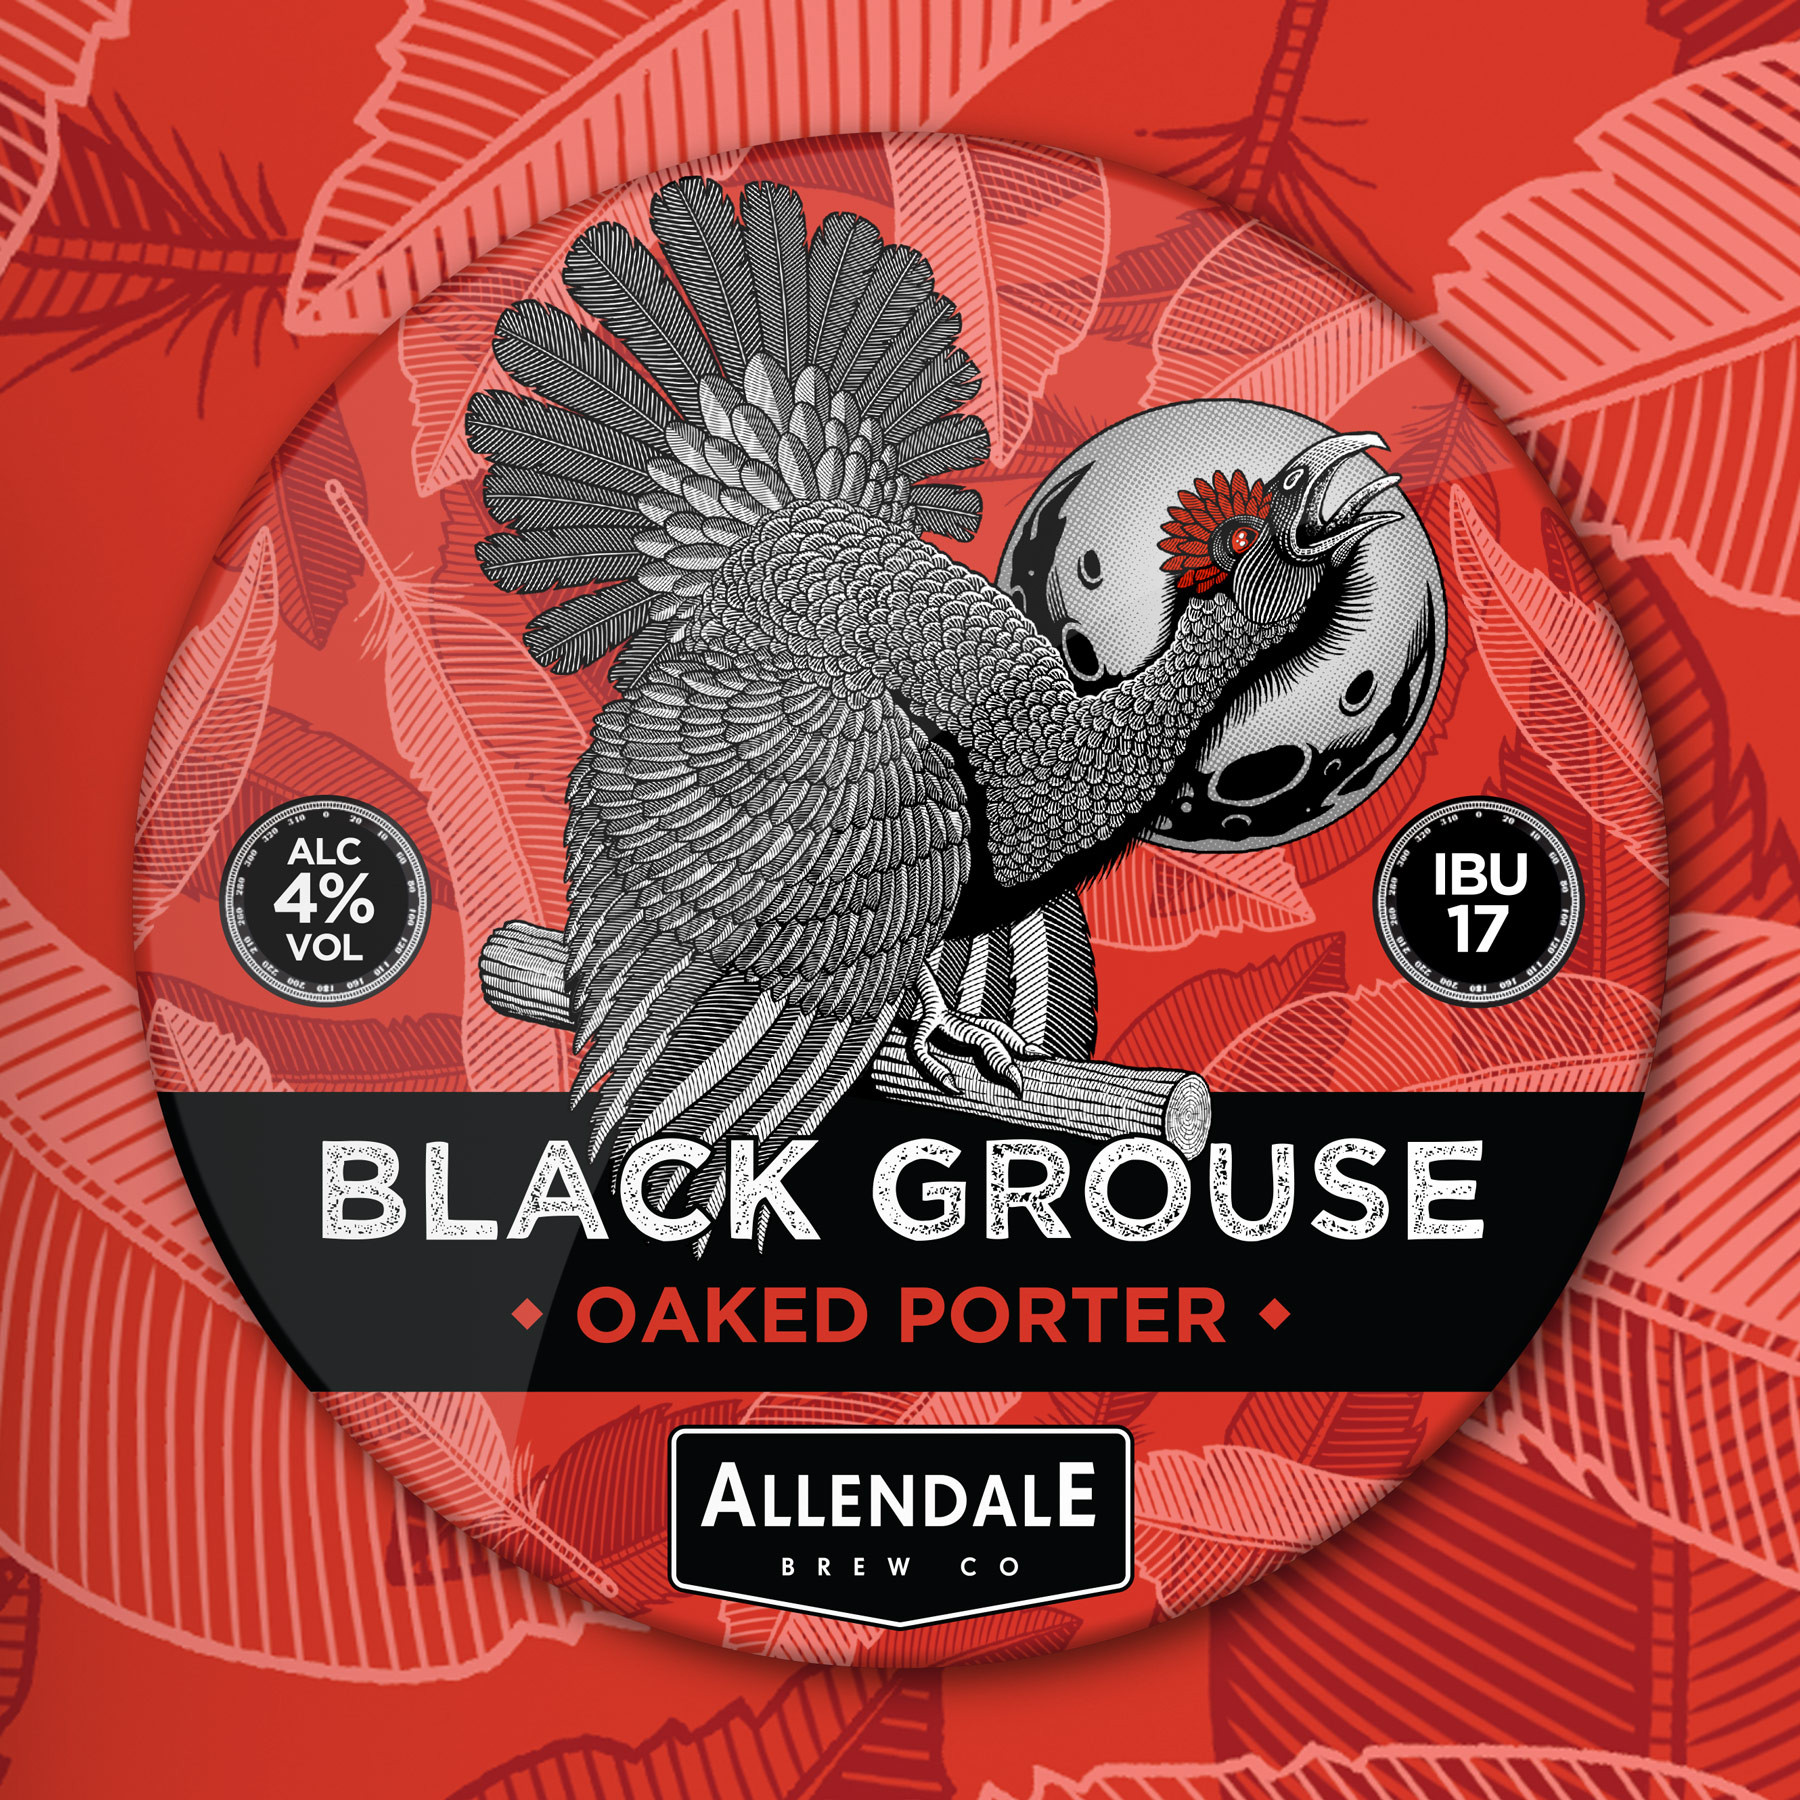 allendale-black-grouse-beer-pump-clip-de